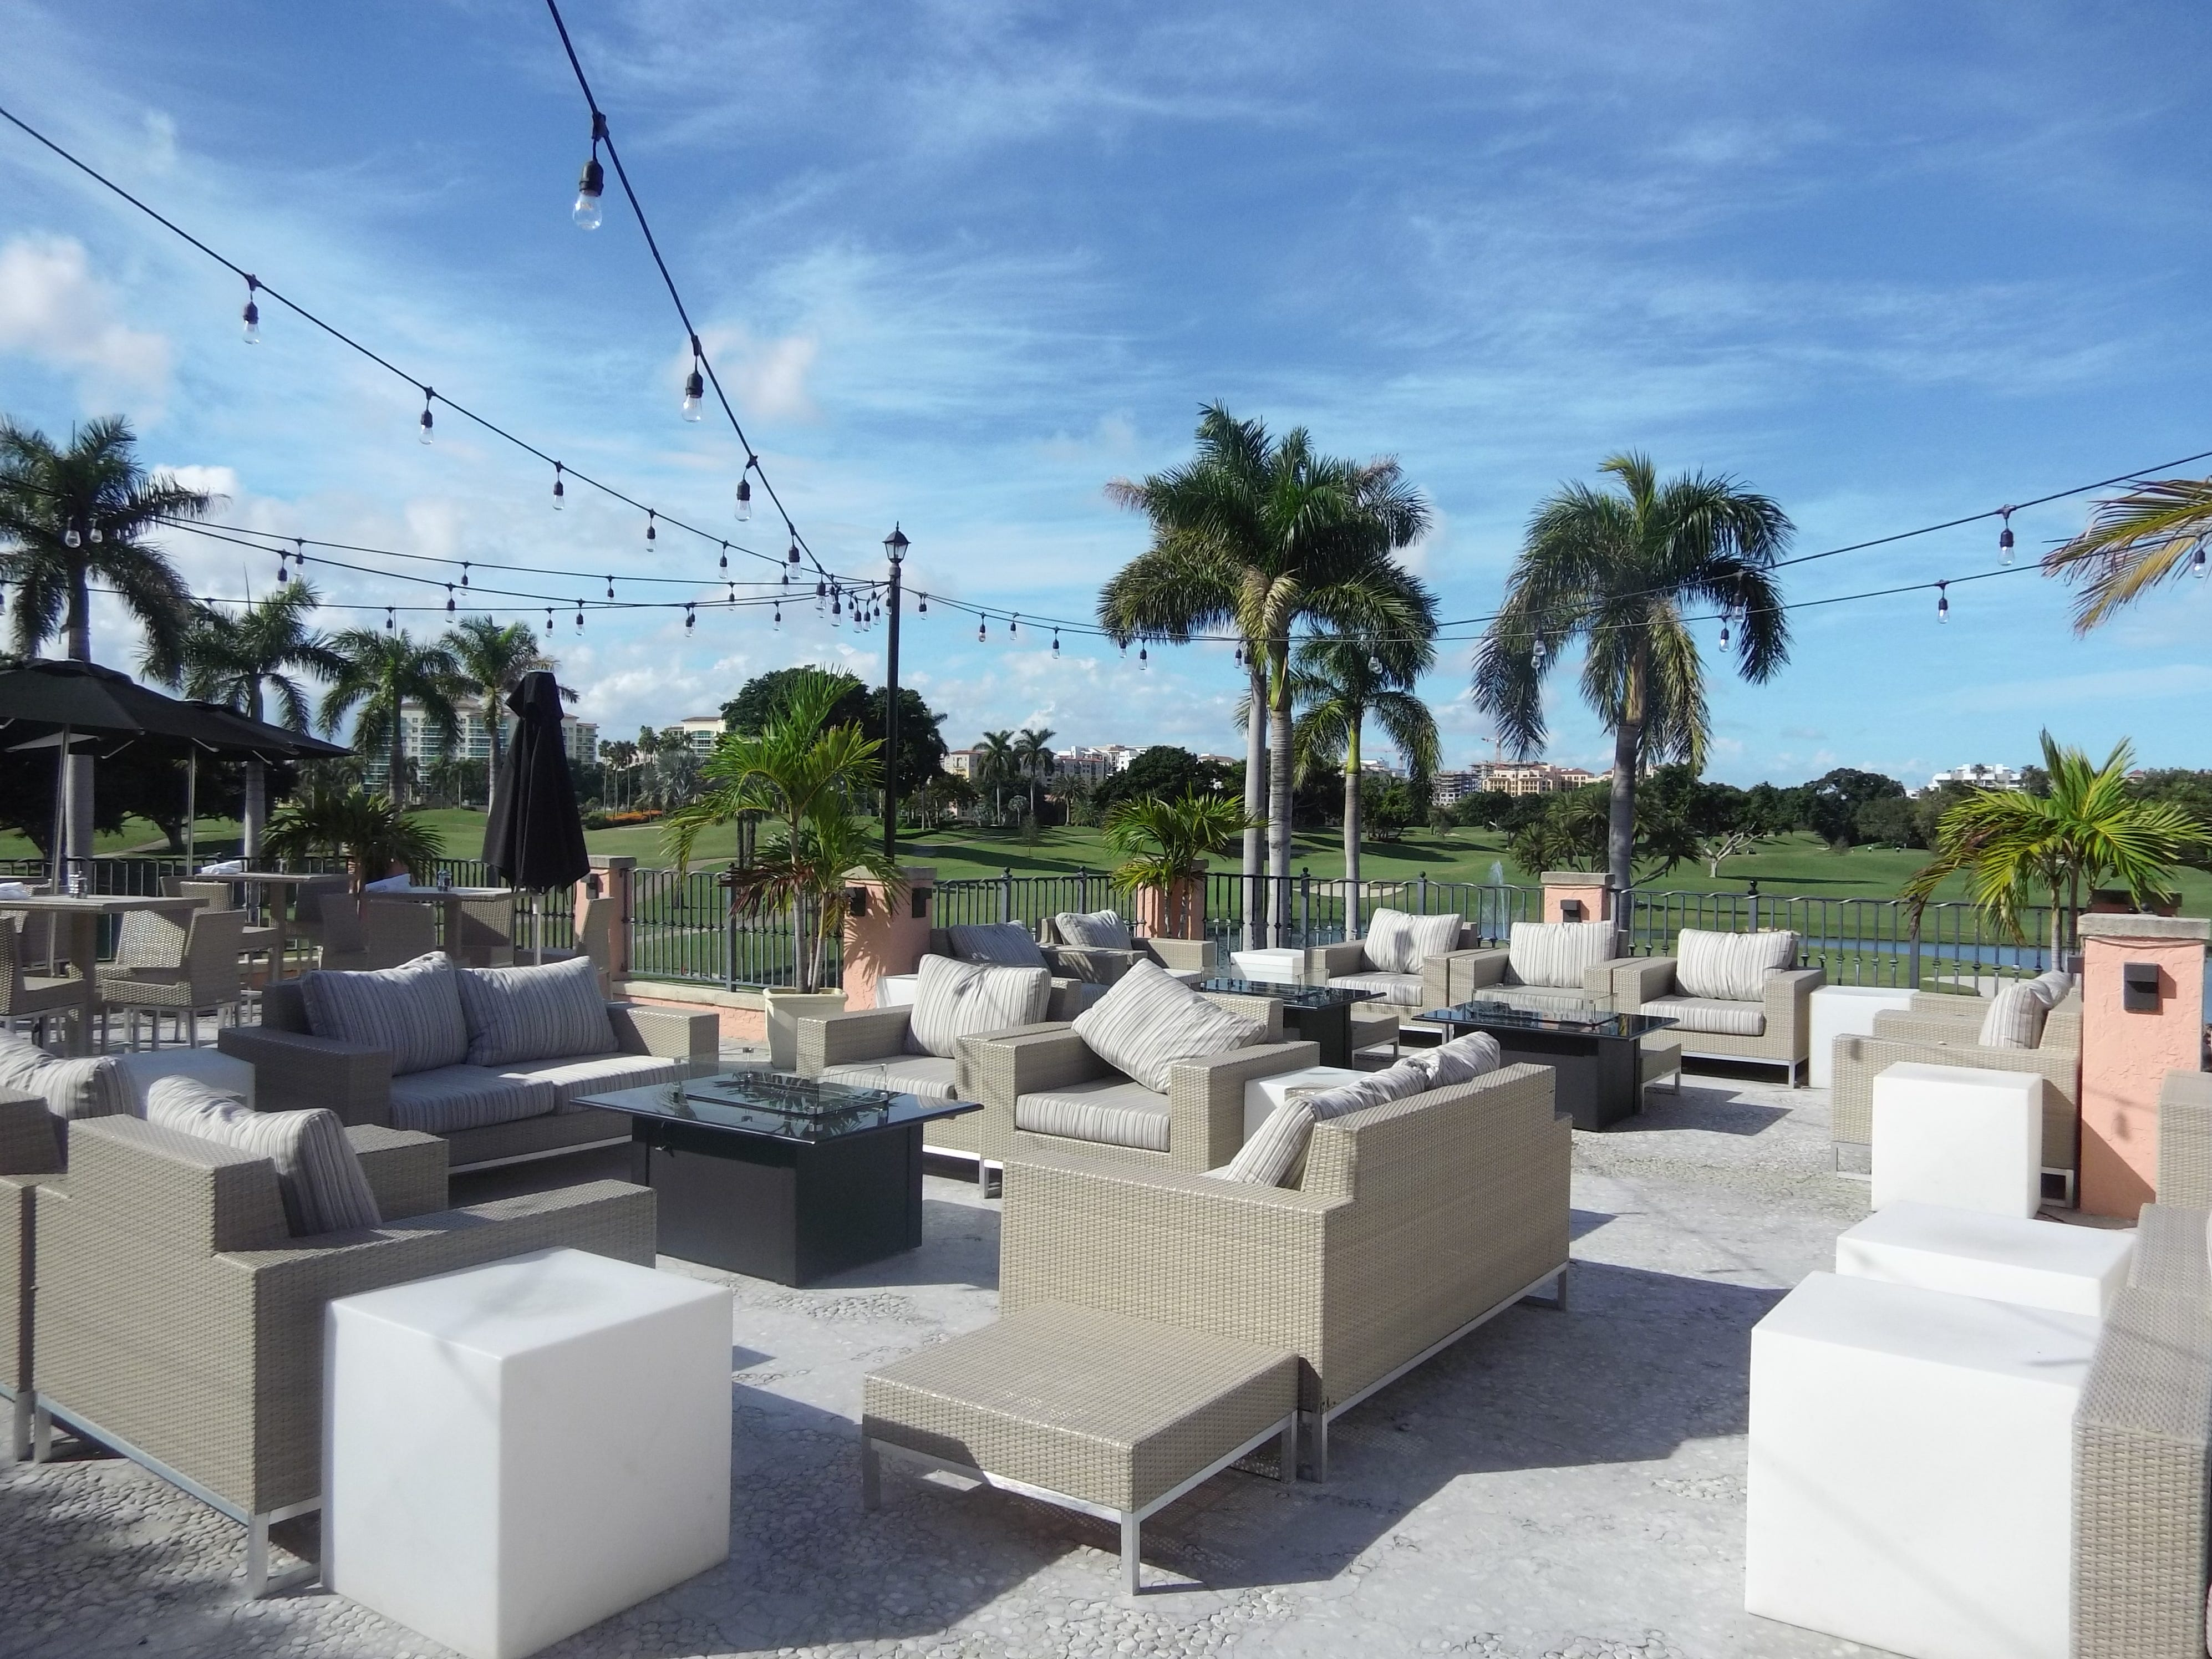 An outdoor seating area off the bar at 501 East Kitchen & Bar overlooks the resort's golf courses